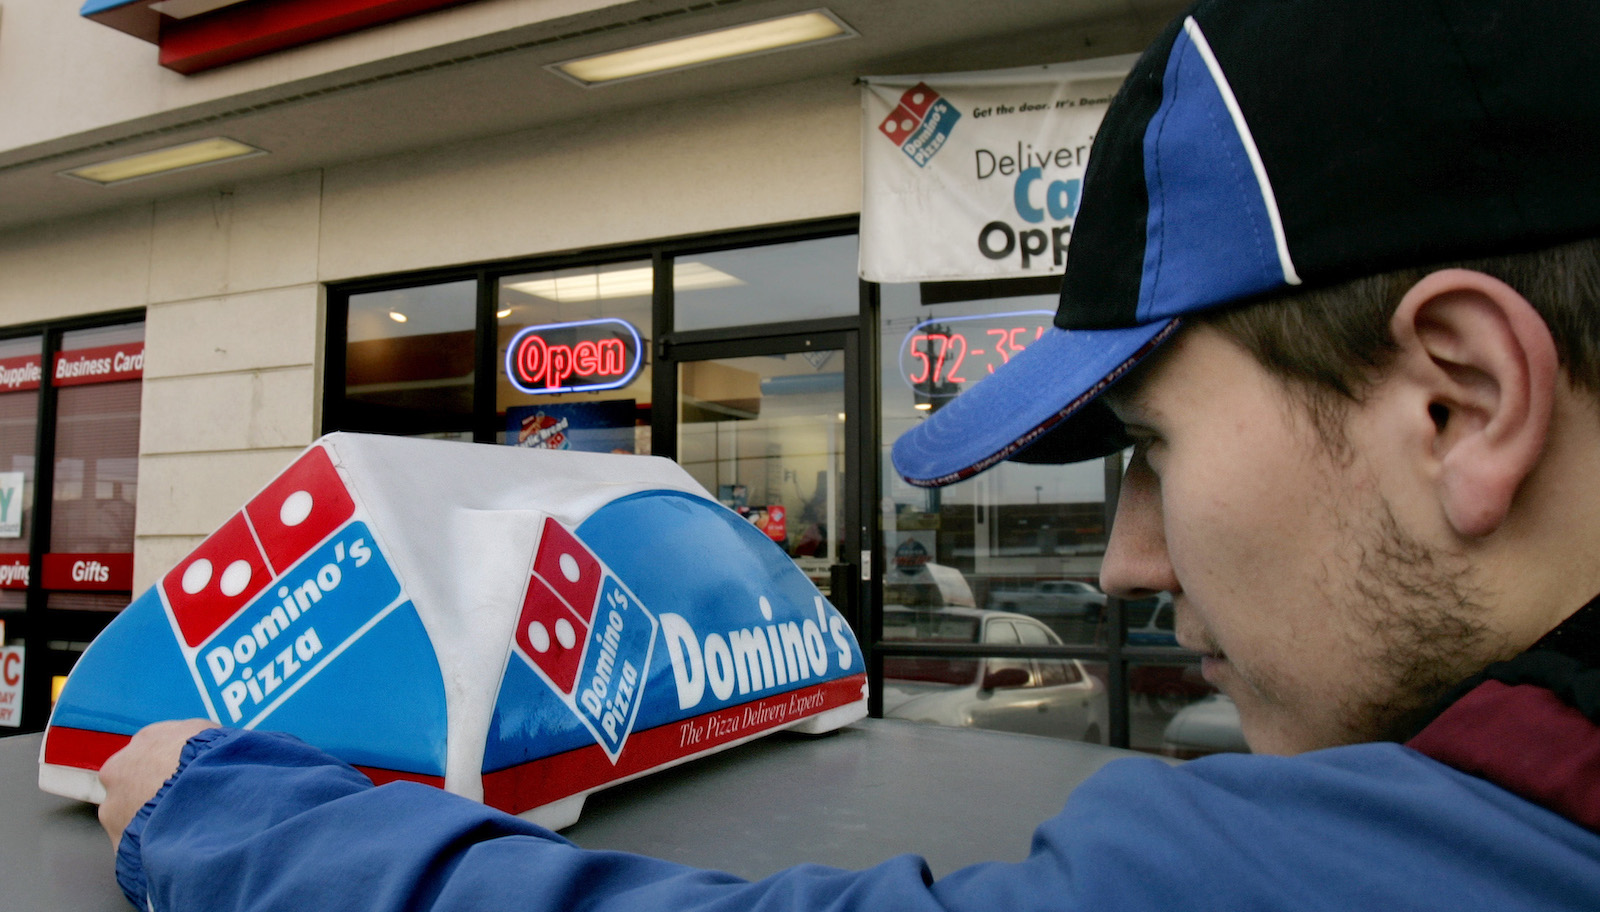 Domino's Pizza delivery person Brandon Christensen plugs in the company sign atop his car as the sun sets, Wednesday, Feb. 21, 2007, in Sandy, Utah.  Domino's Pizza Inc. said Frida, Feb. 23, 2007 fourth-quarter profit fell 23 percent from year-ago results that included a gain on the sale of an investment in a franchise operation in Mexico.